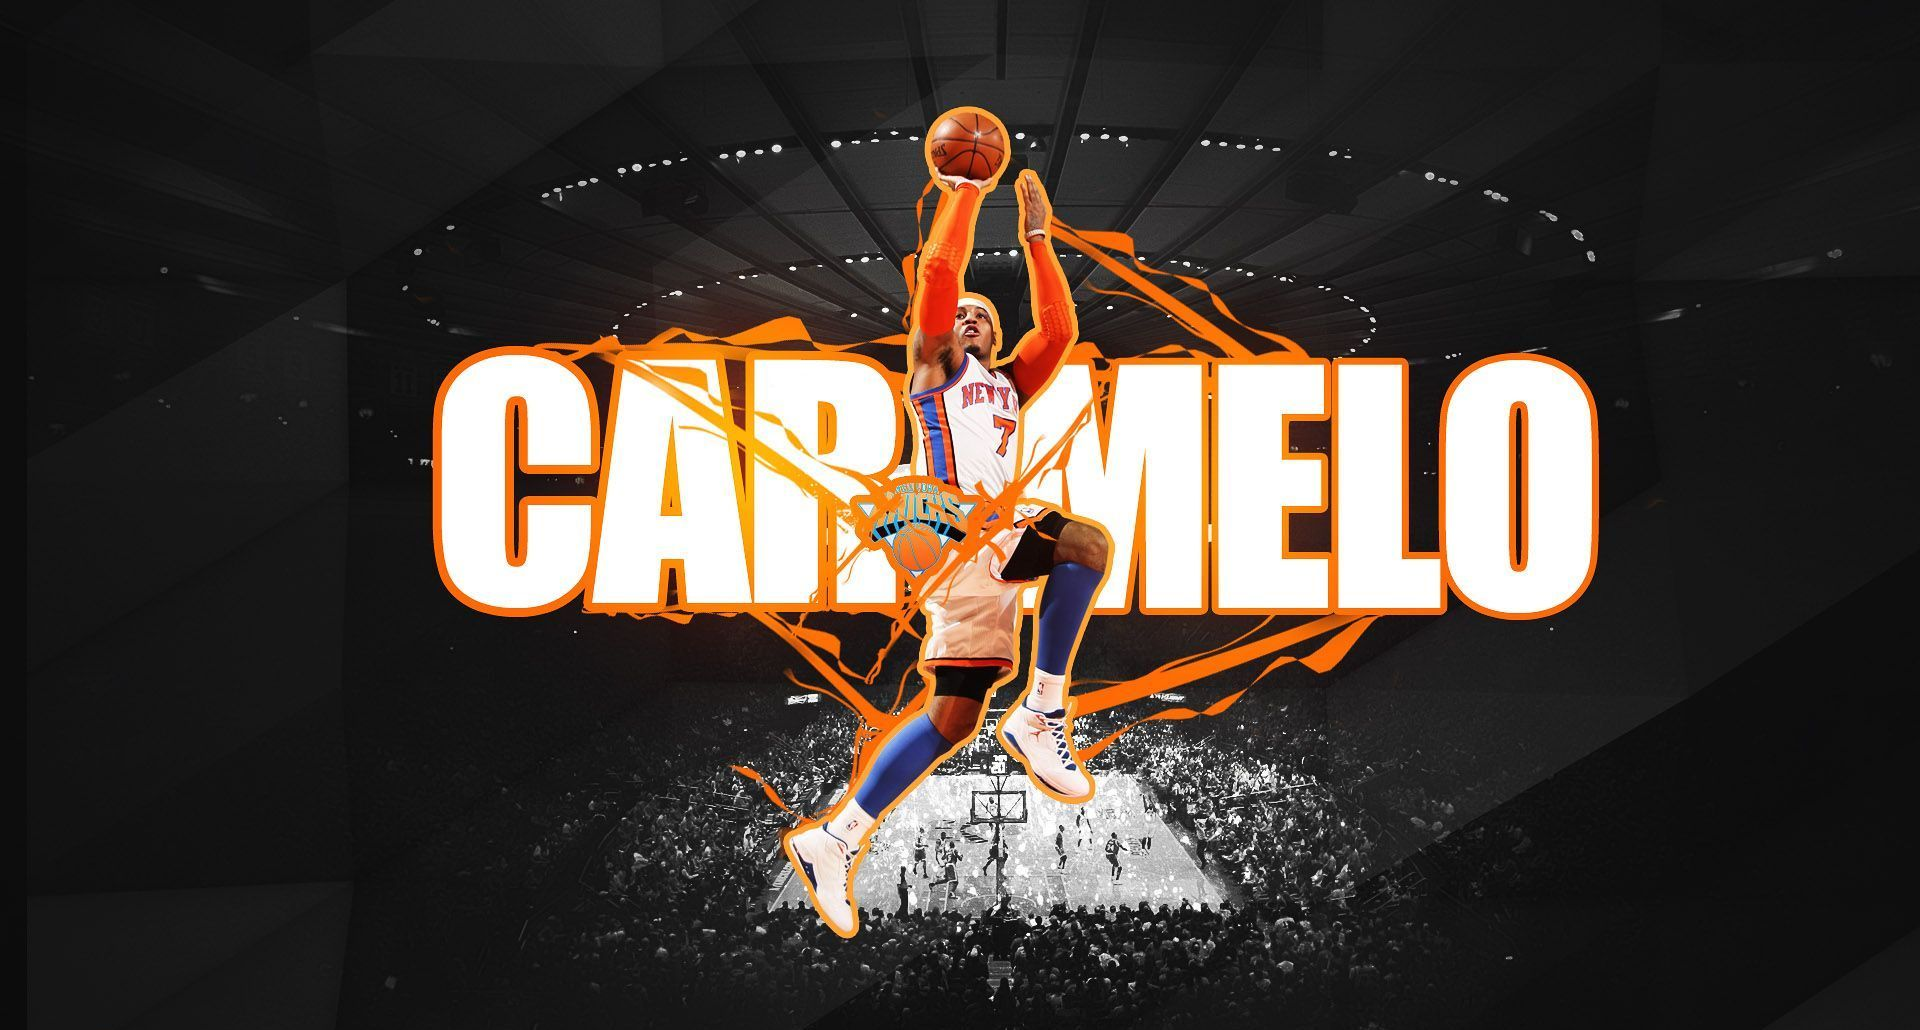 carmelo-anthony-pack-1080p-hd-by-Butler-Walls-wallpaper-wpc5803290